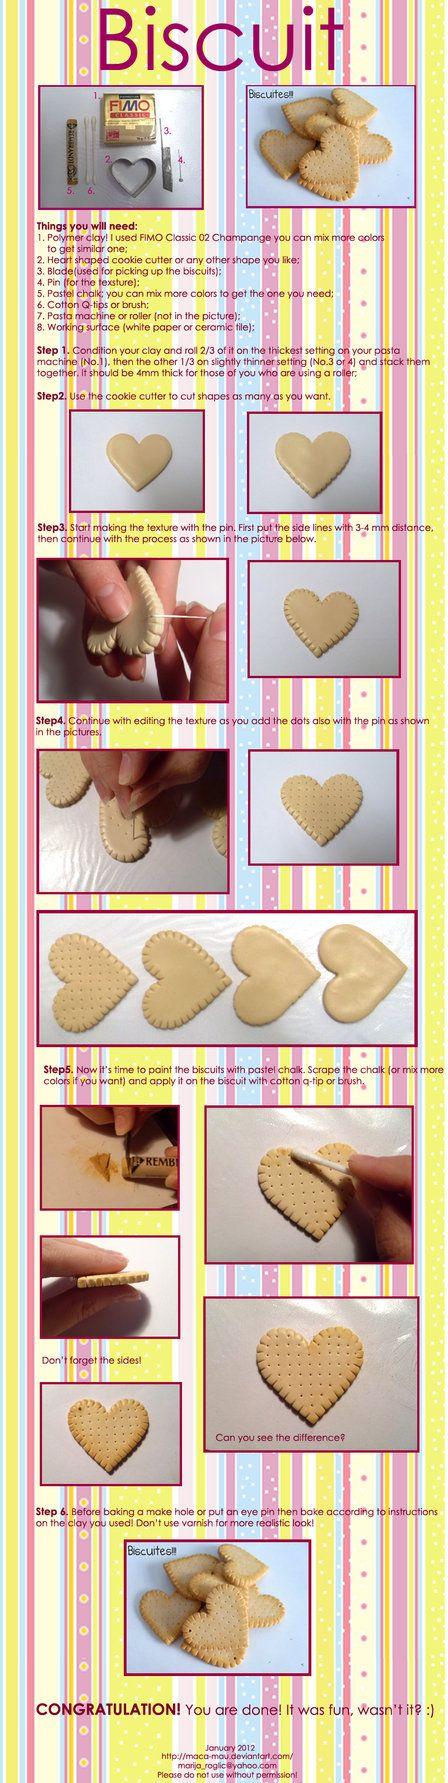 clay polymer biscuits..could come in handy someday?